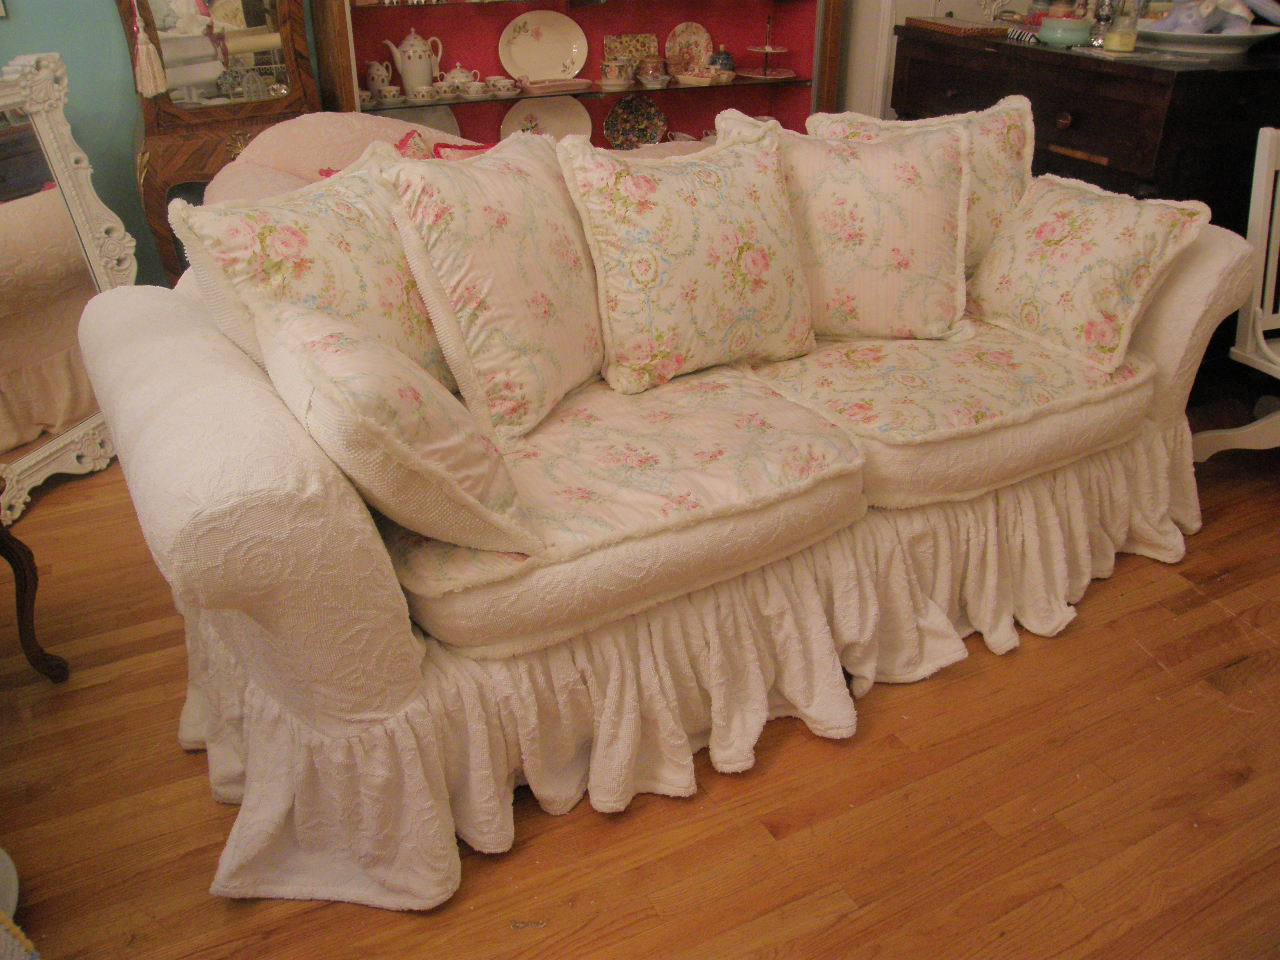 Rose Sofa Slipcover Montero Microfiber Convert A Couch Sleeper Bed Vintage Chic Furniture Schenectady Ny Shabby